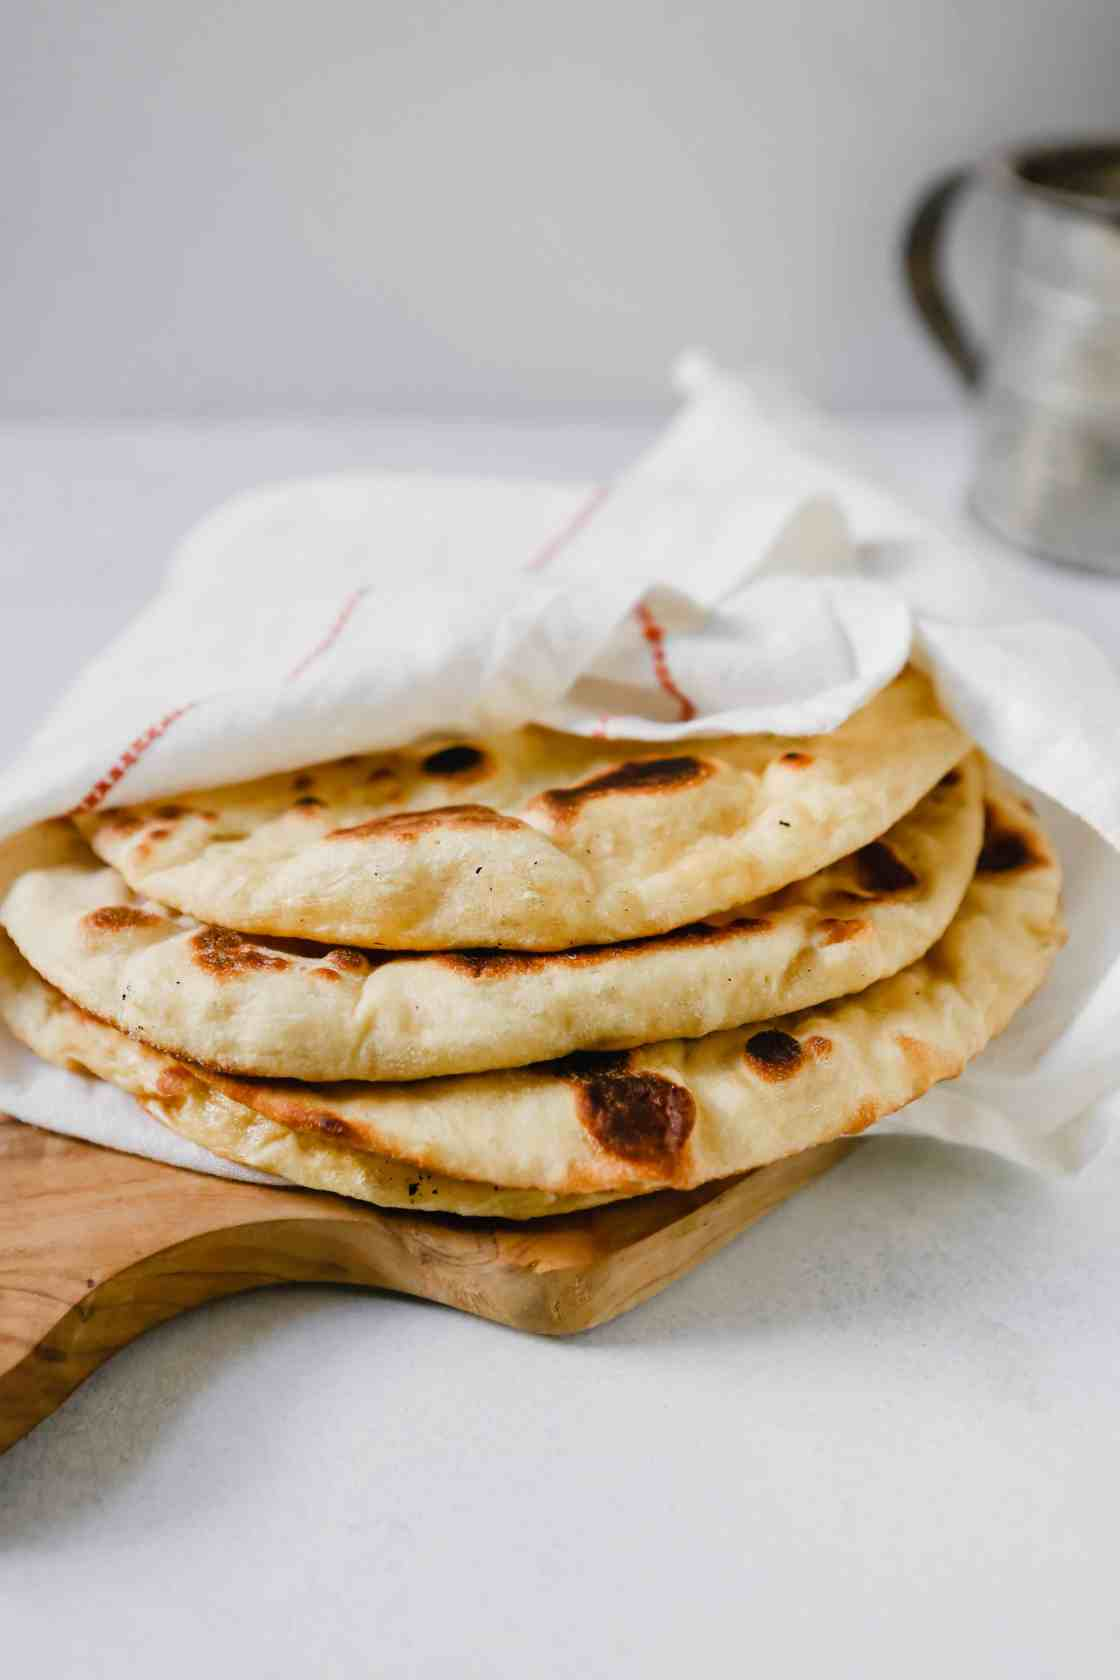 Homemade naan bread wrapped in a white towel